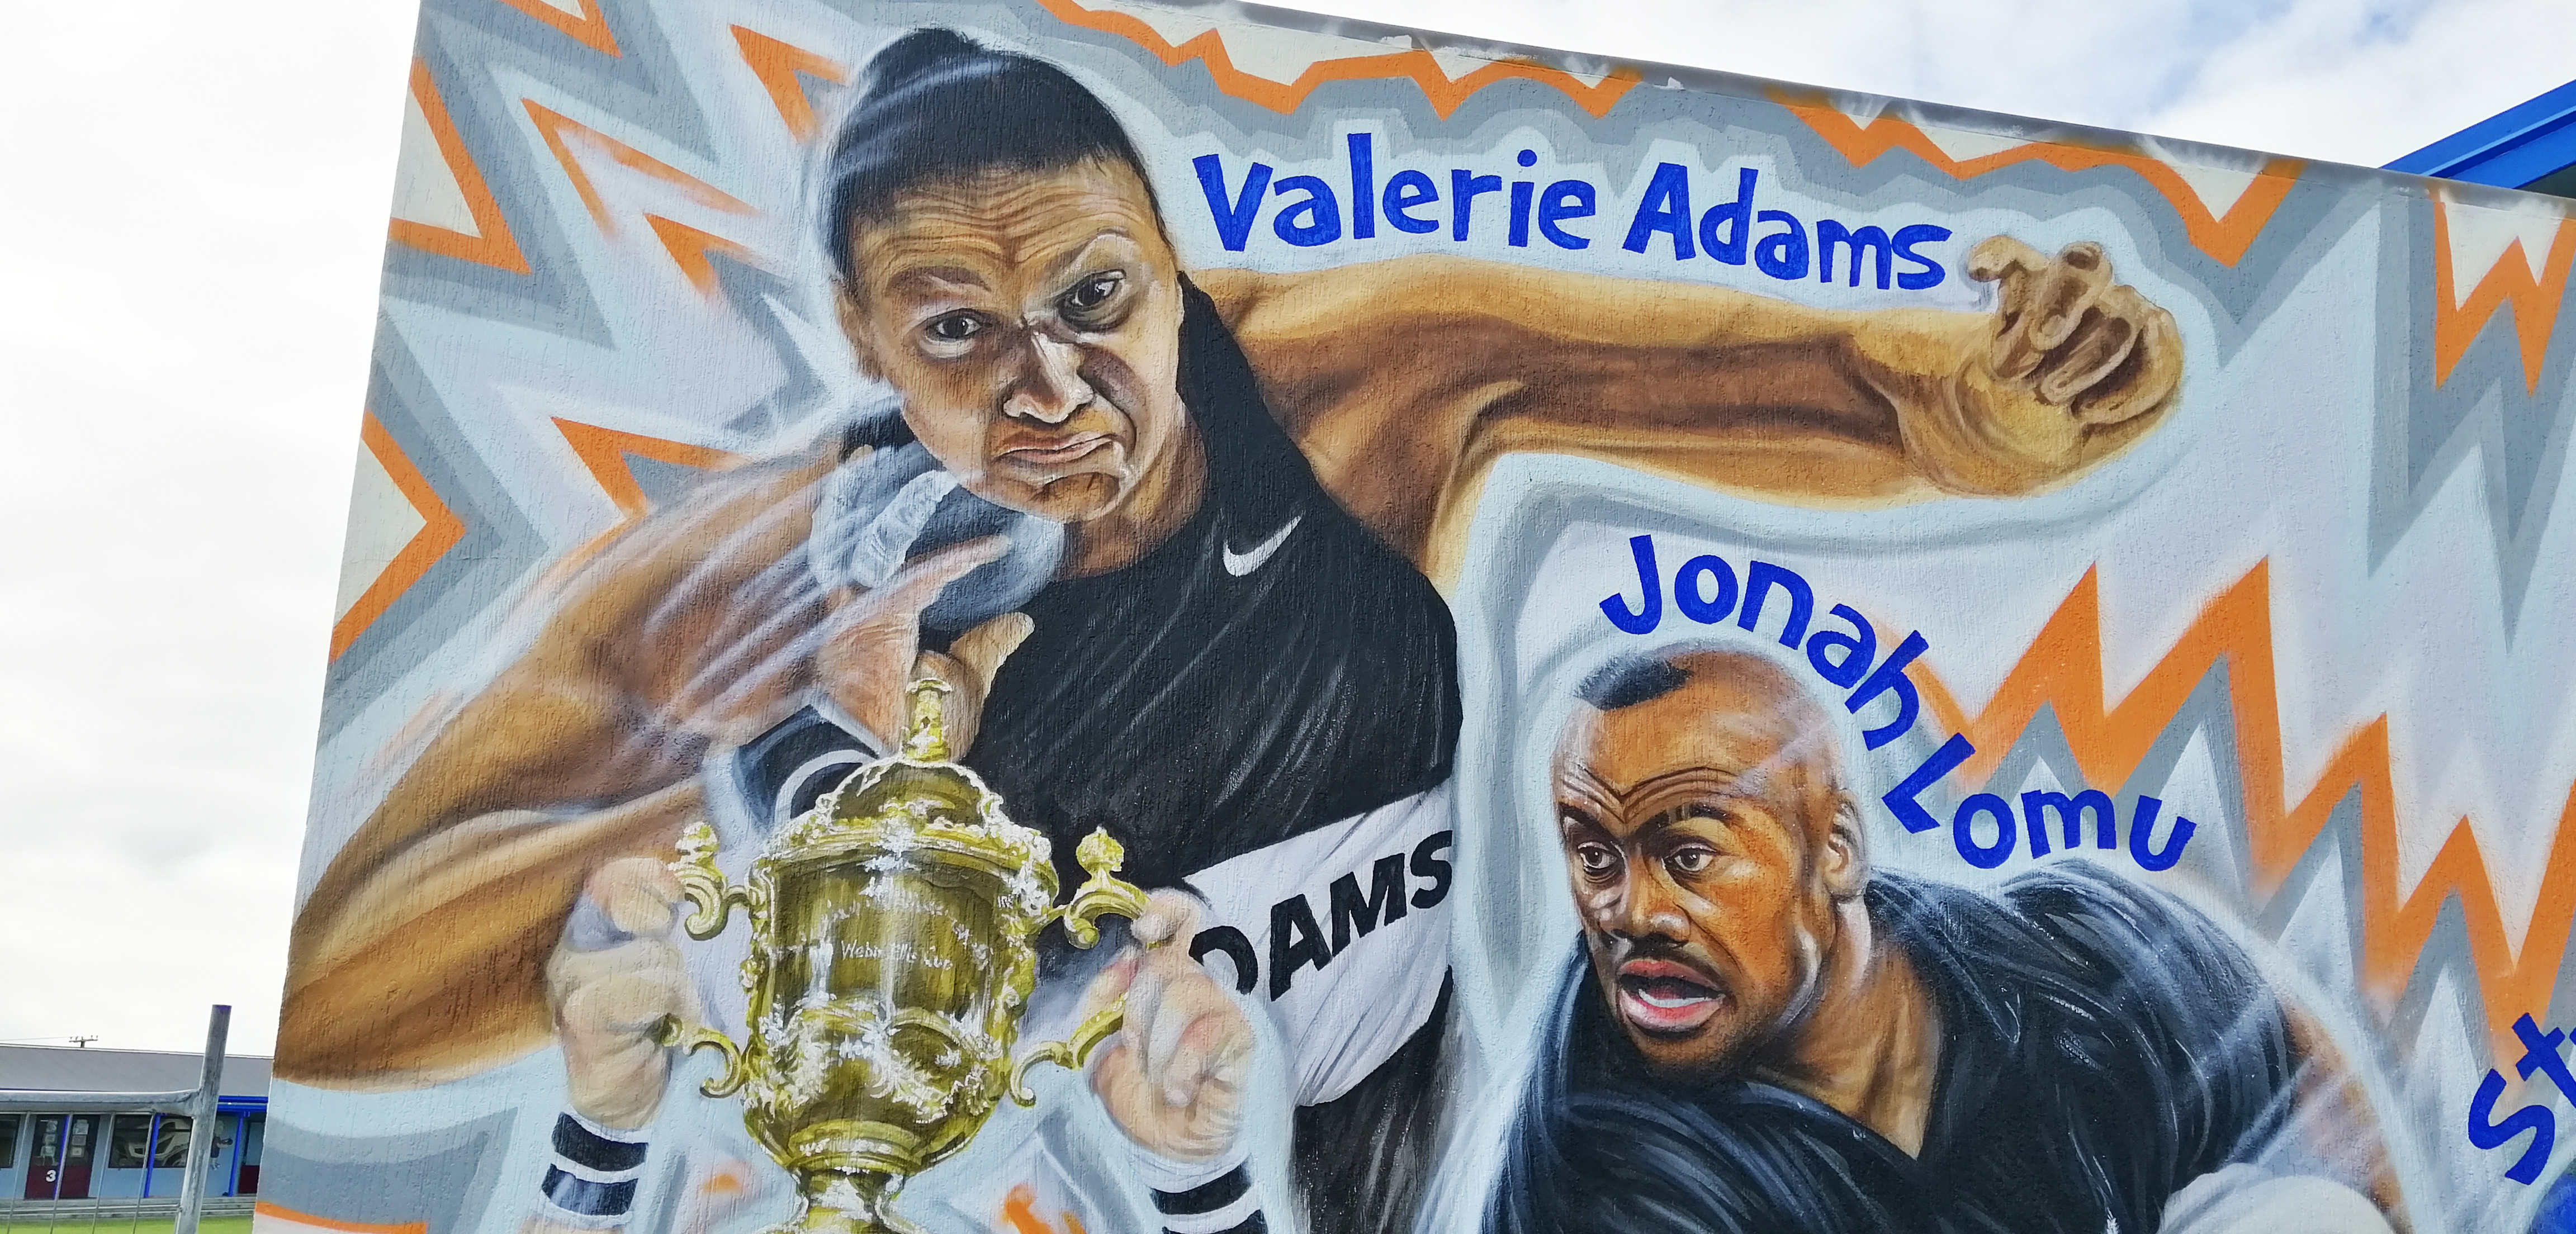 valerie adams finished